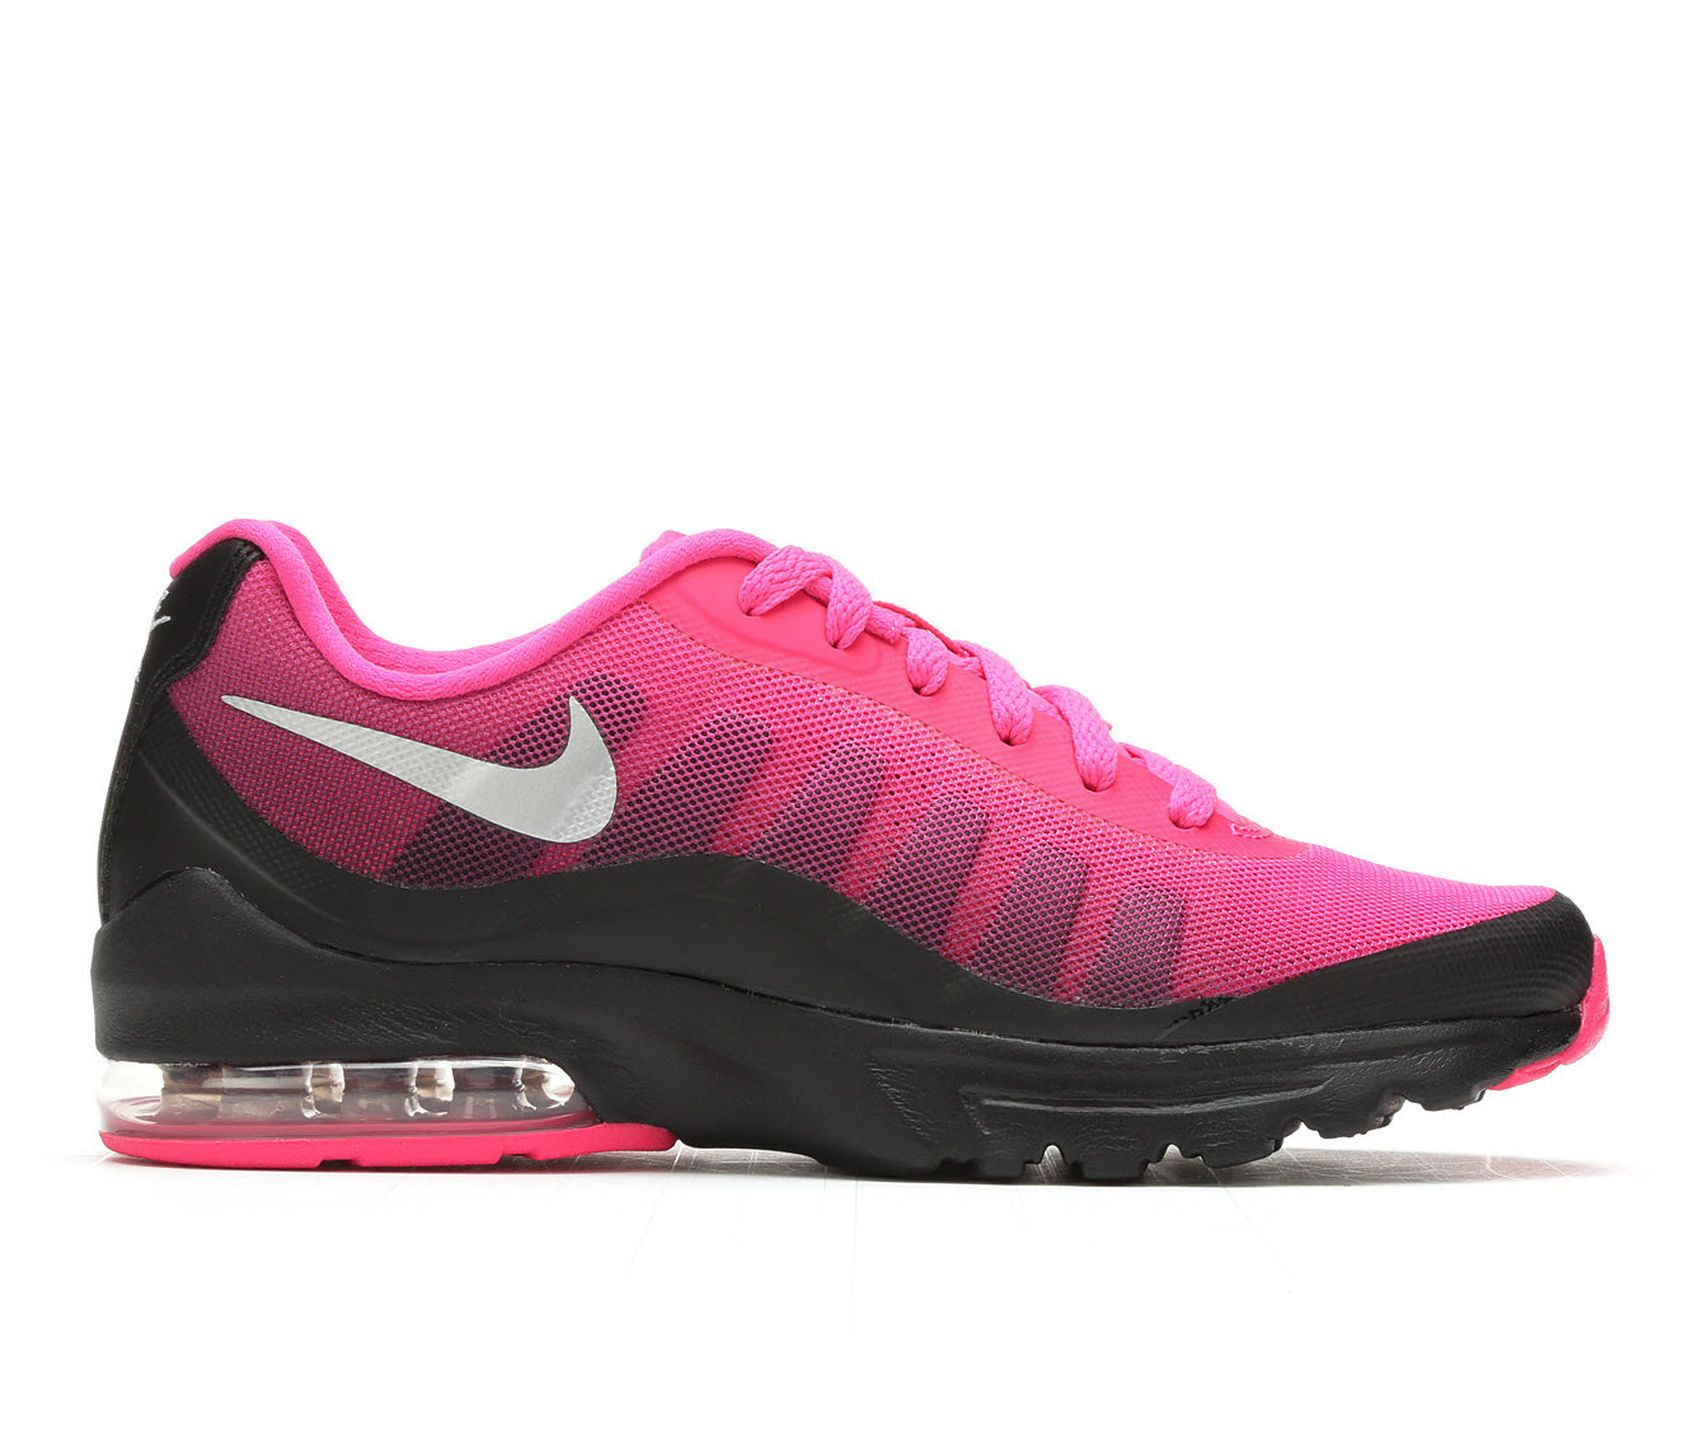 d1fd23571e Women's Nike Air Max Invigor Print Athletic Sneakers | Shoe Carnival ...